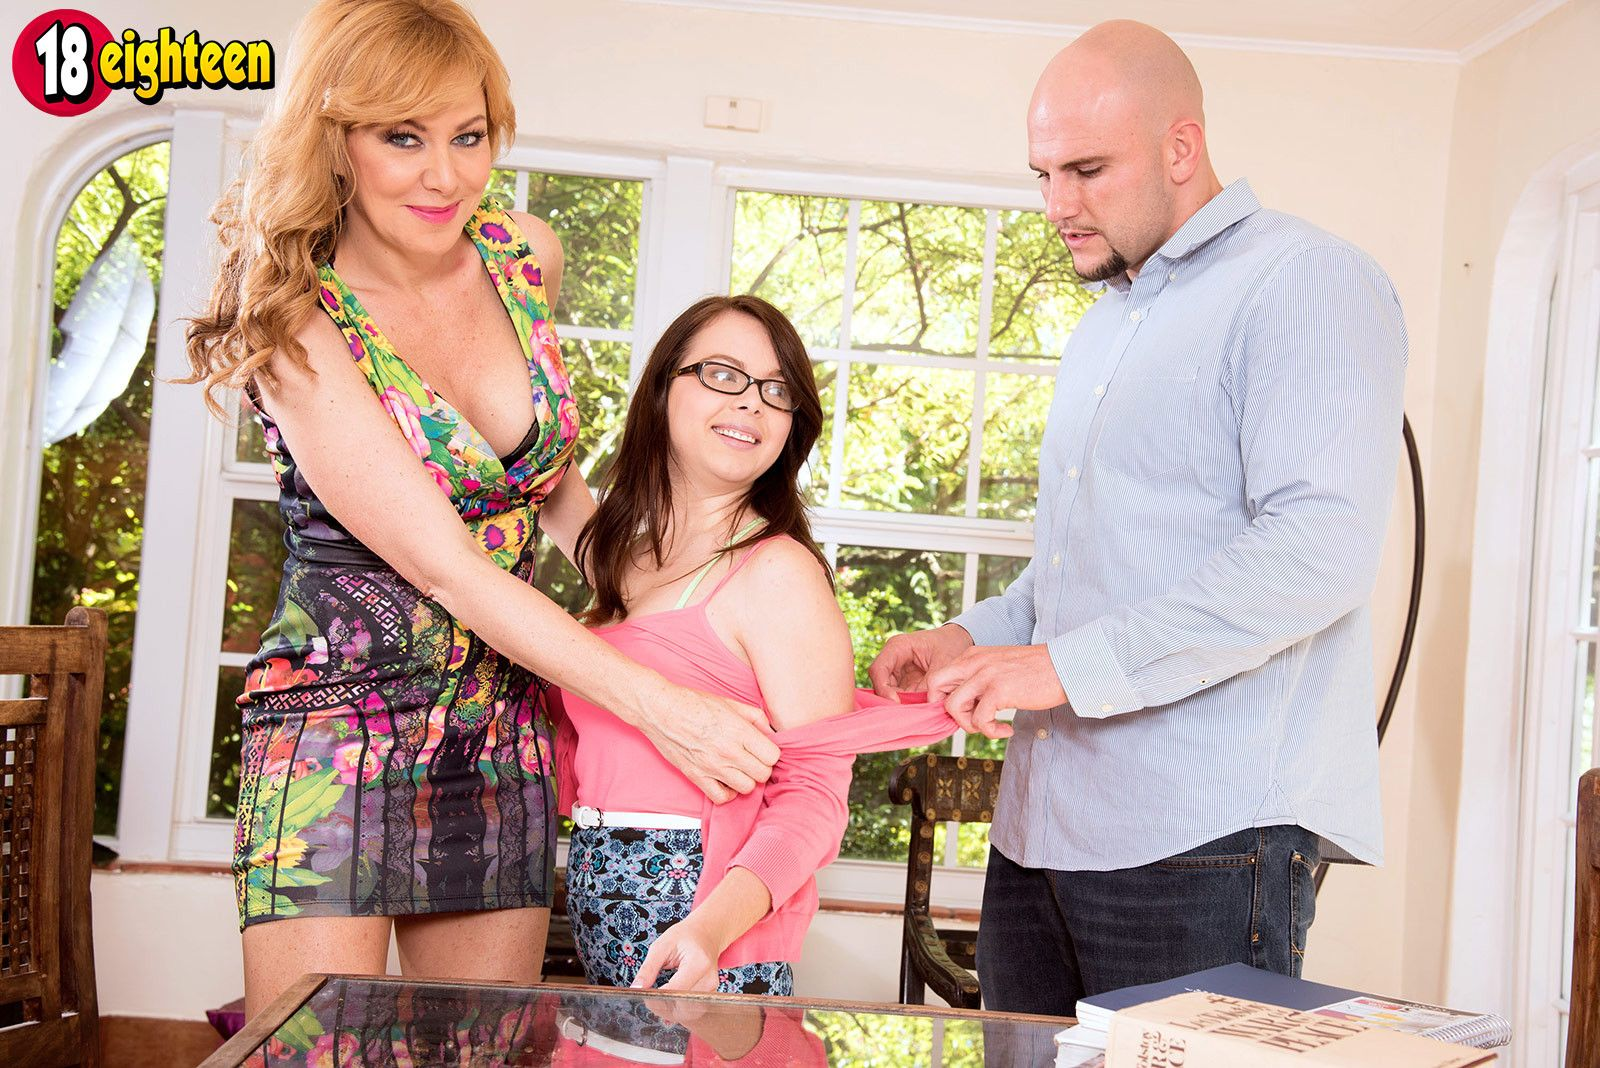 Time for sex tutor sasha sean to turn out yet another inexperienced teen